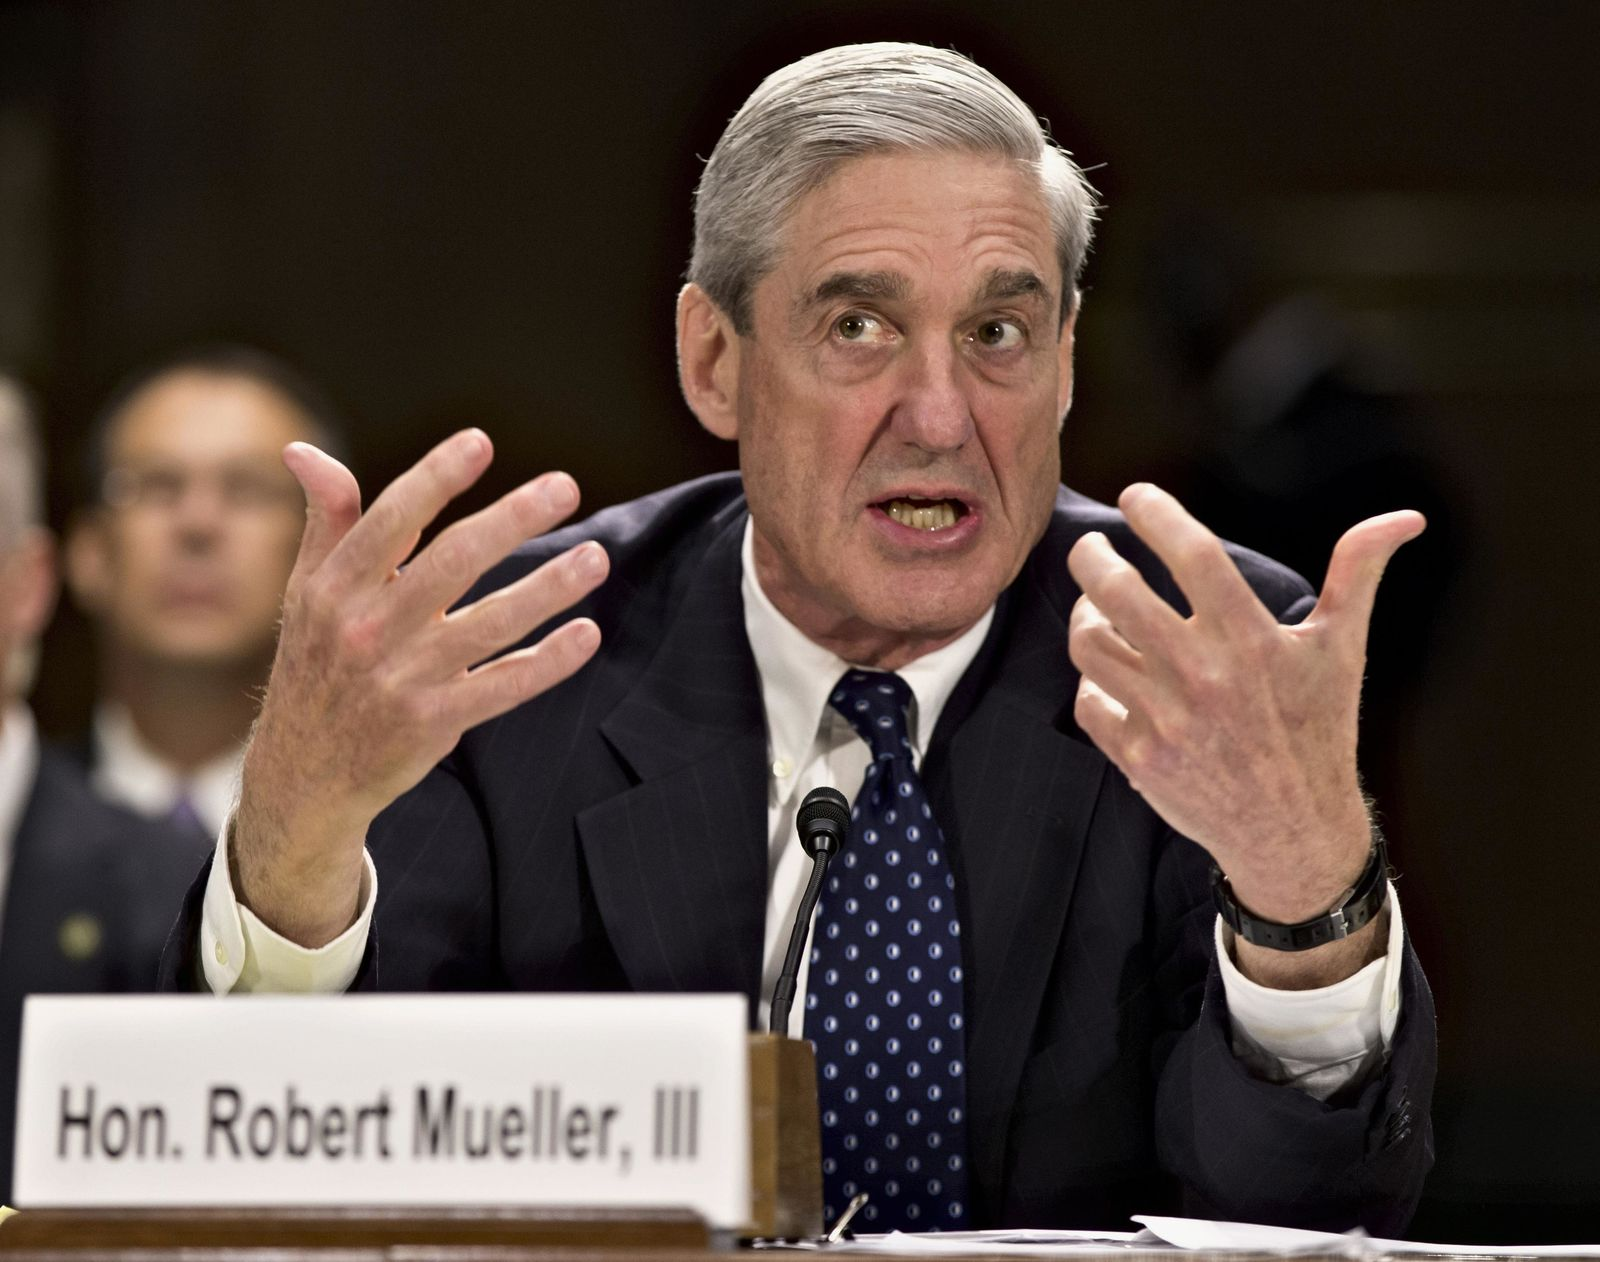 In this June 19, 2013, file photo, former FBI Director Robert Mueller testifies on Capitol Hill in Washington. On May 17, 2017, the Justice Department said is appointing Mueller as special counsel to oversee investigation into Russian interference in the 2016 presidential election. THE ASSOCIATED PRESS